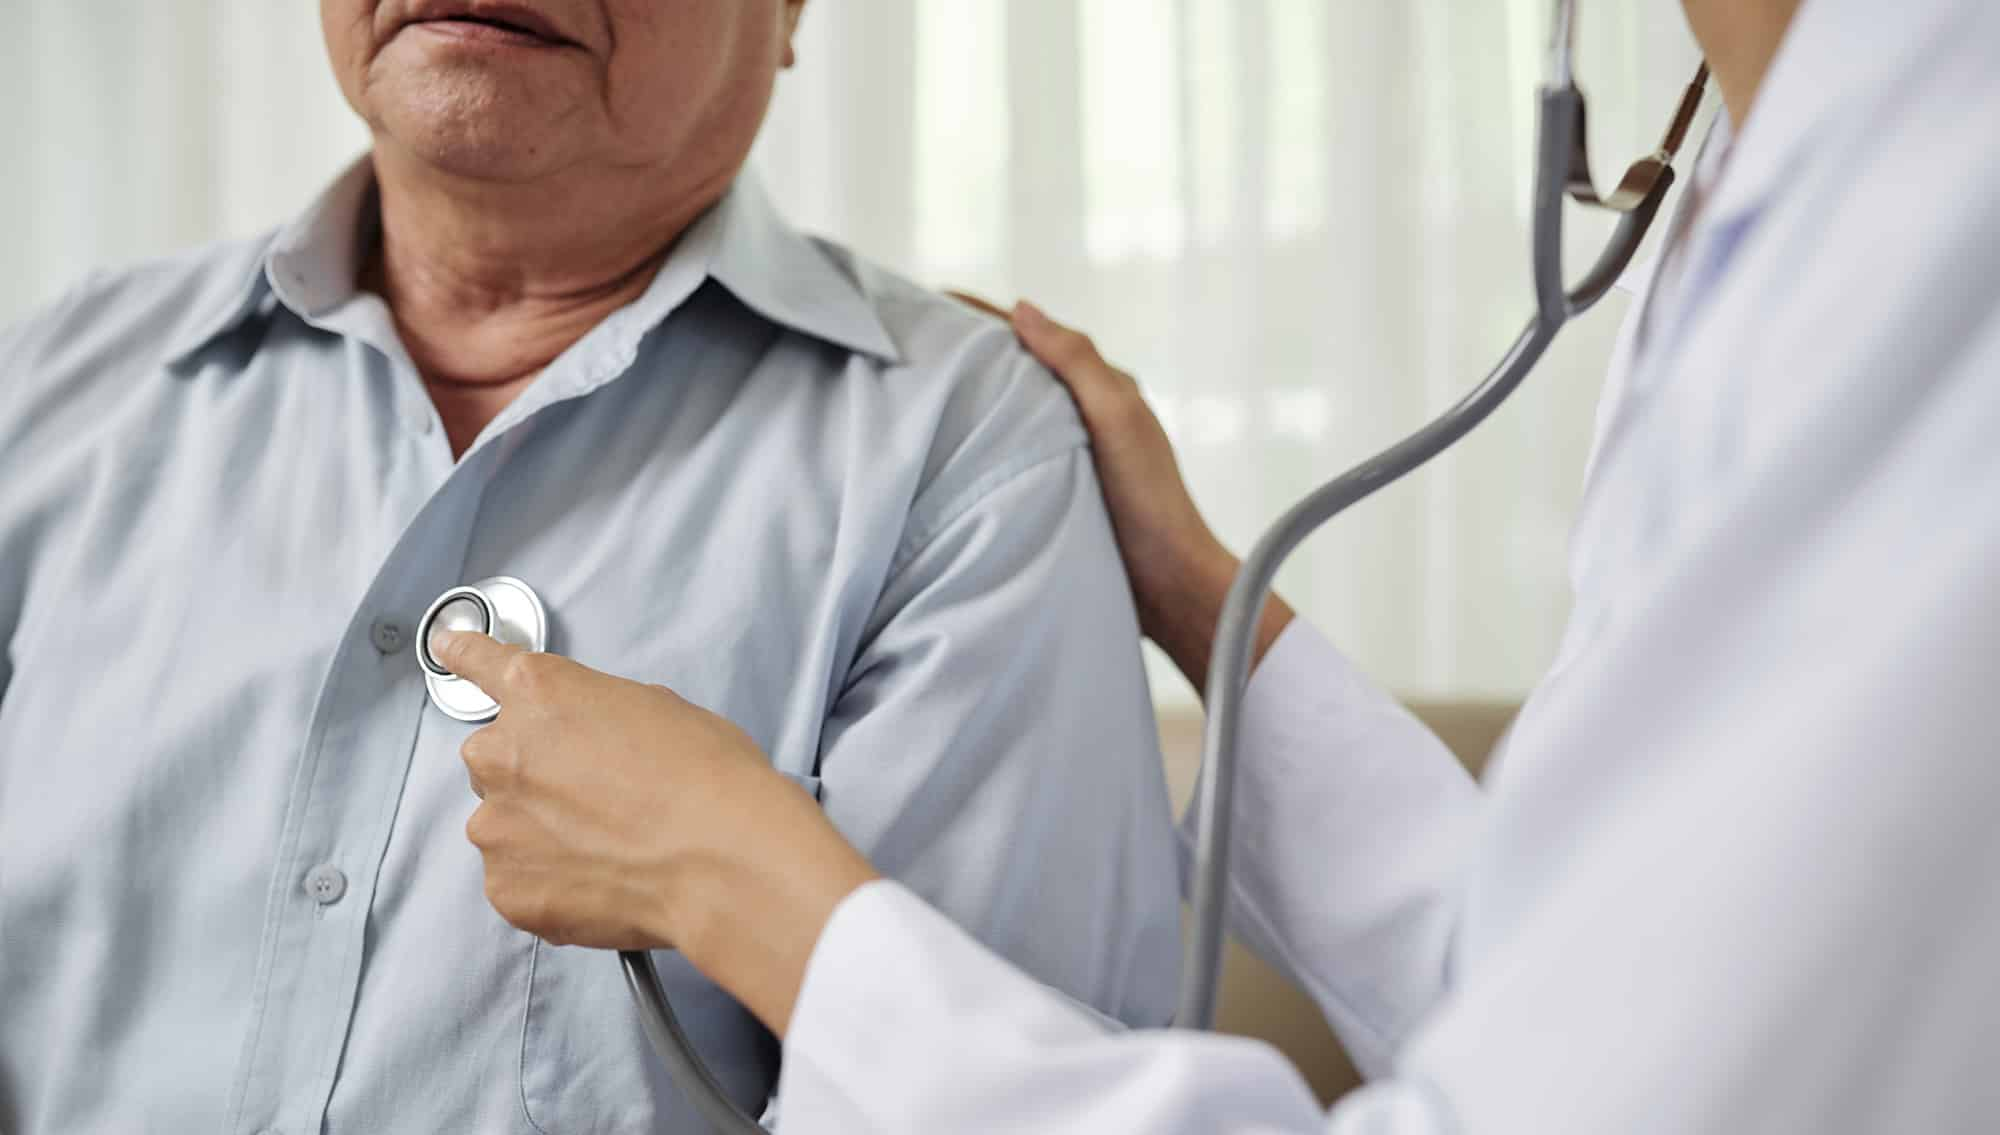 general practitioner checks a patient's heart beat